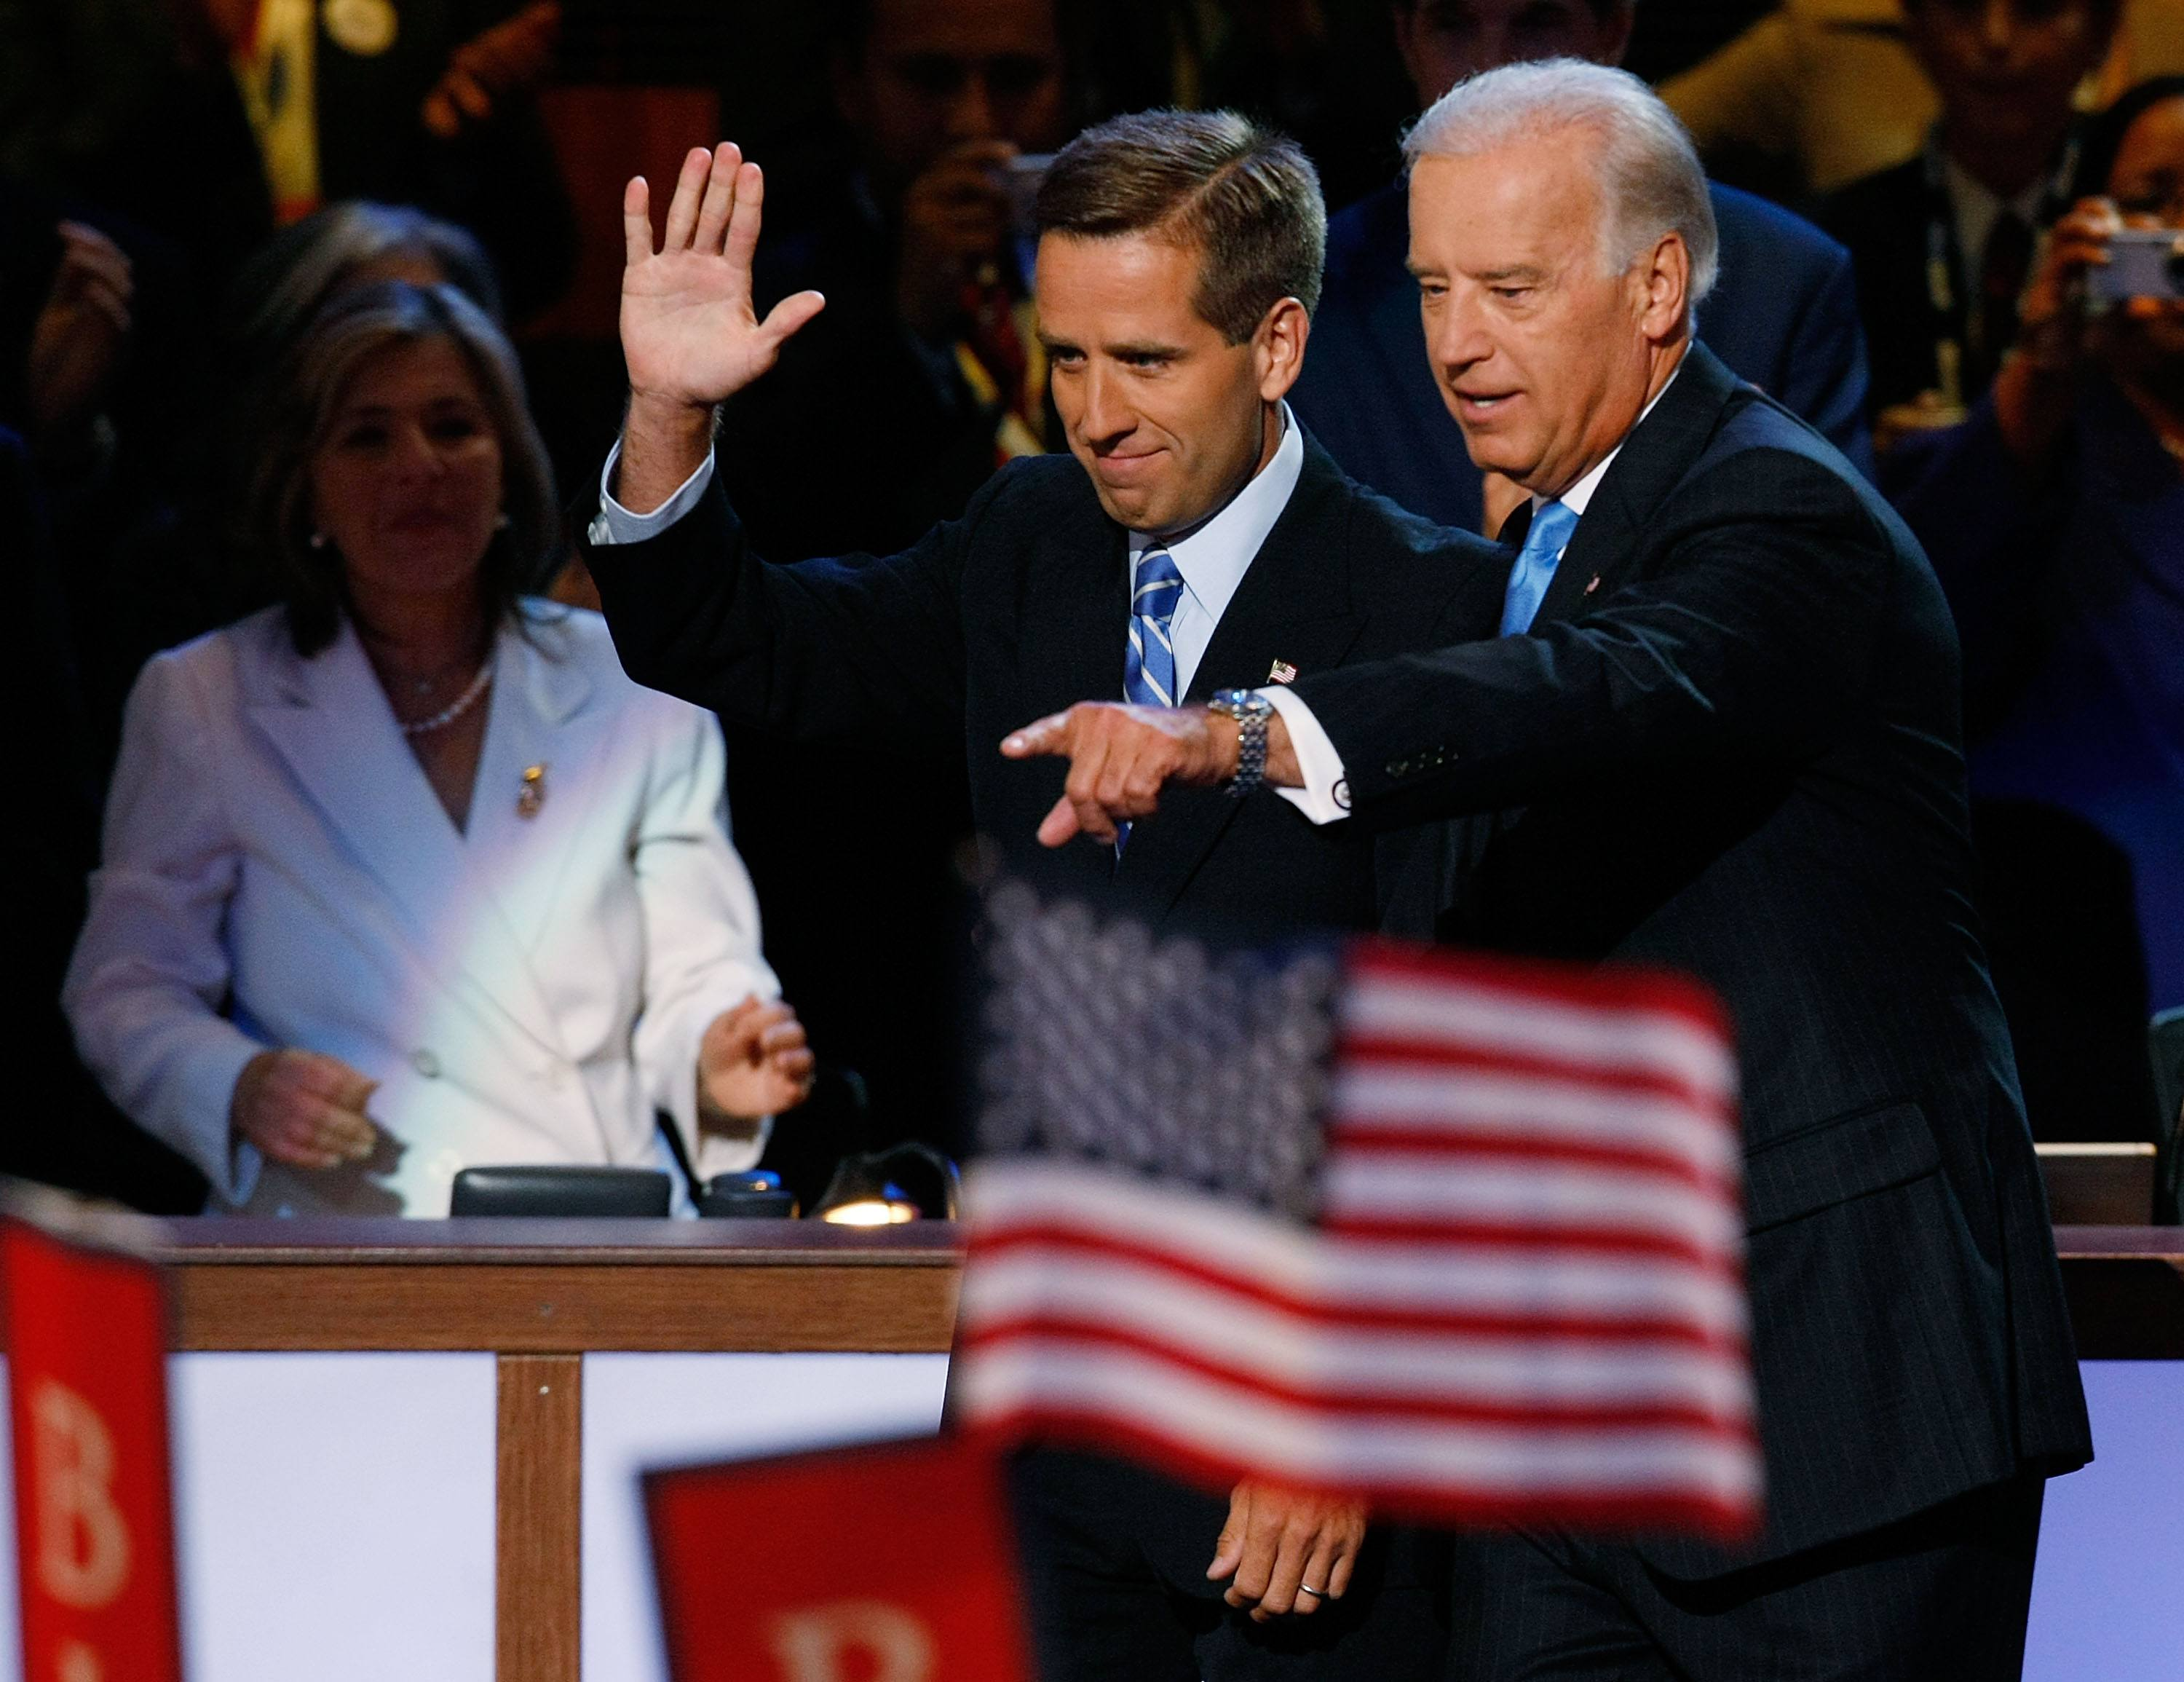 Joe and Beau Biden at the democratic convention